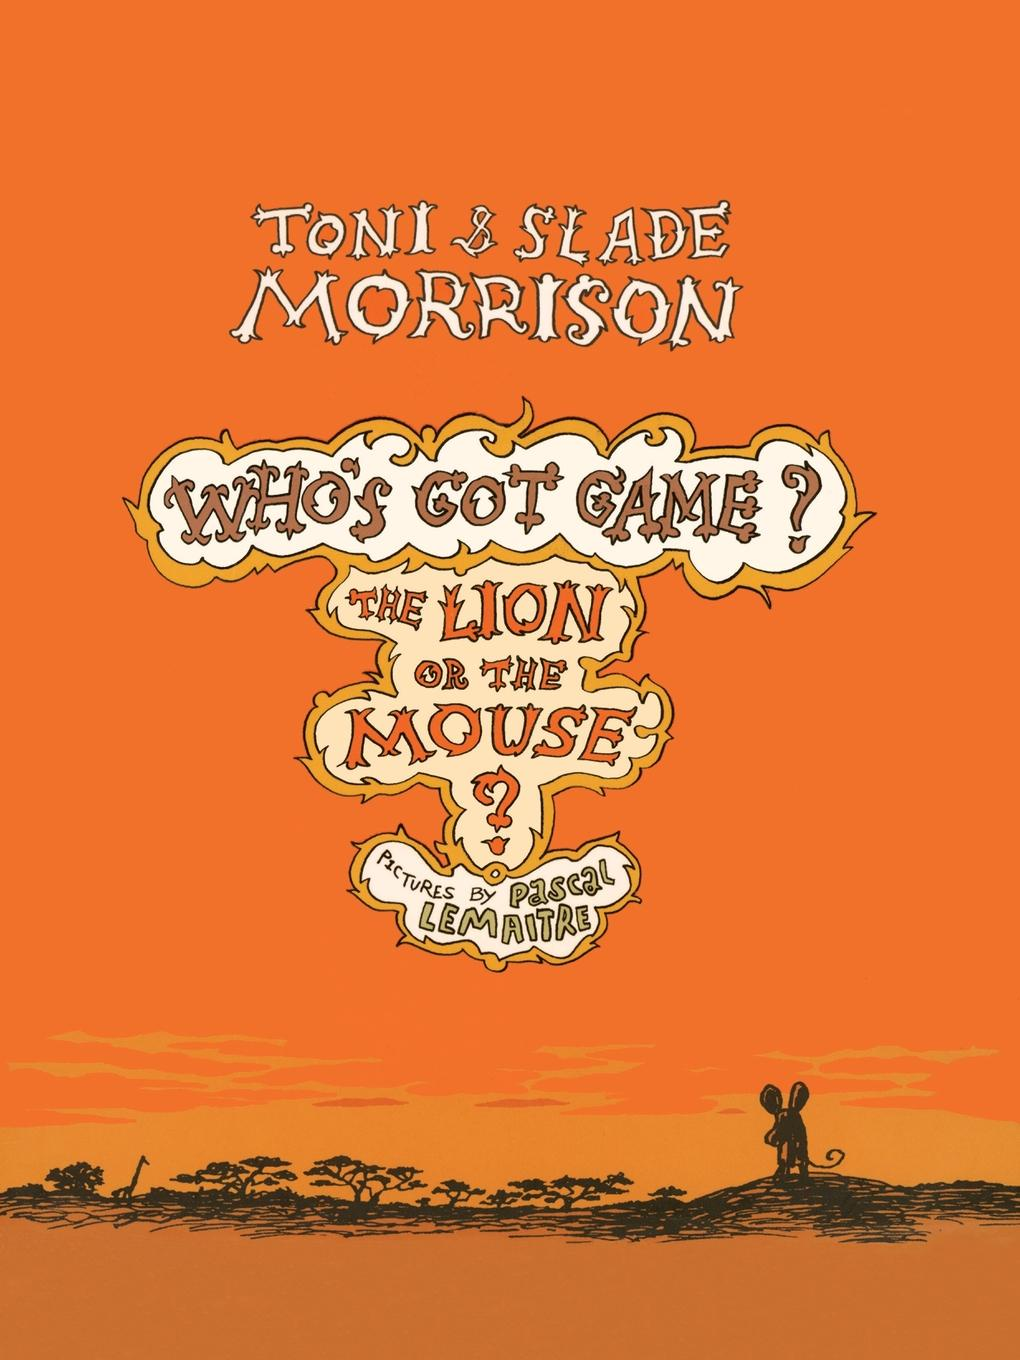 Toni Morrison, Slade Morrison Lion or the Mouse? unknown the hunted outlaw or donald morrison the canadian rob roy